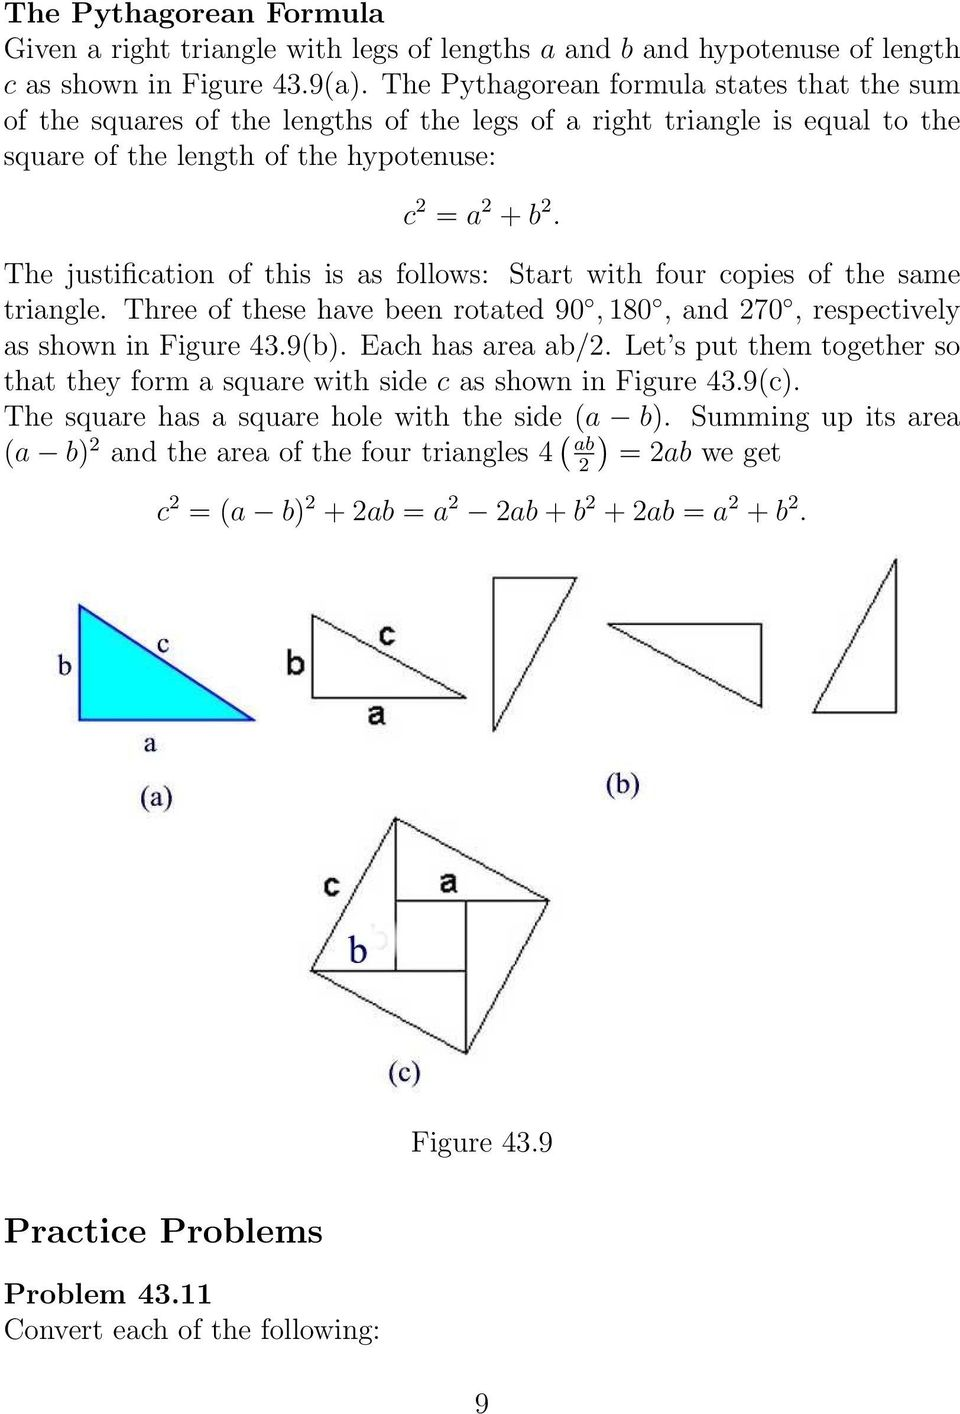 The justification of this is as follows: Start with four copies of the same triangle. Three of these have been rotated 90, 180, and 70, respectively as shown in Figure 43.9(b). Each has area ab/.